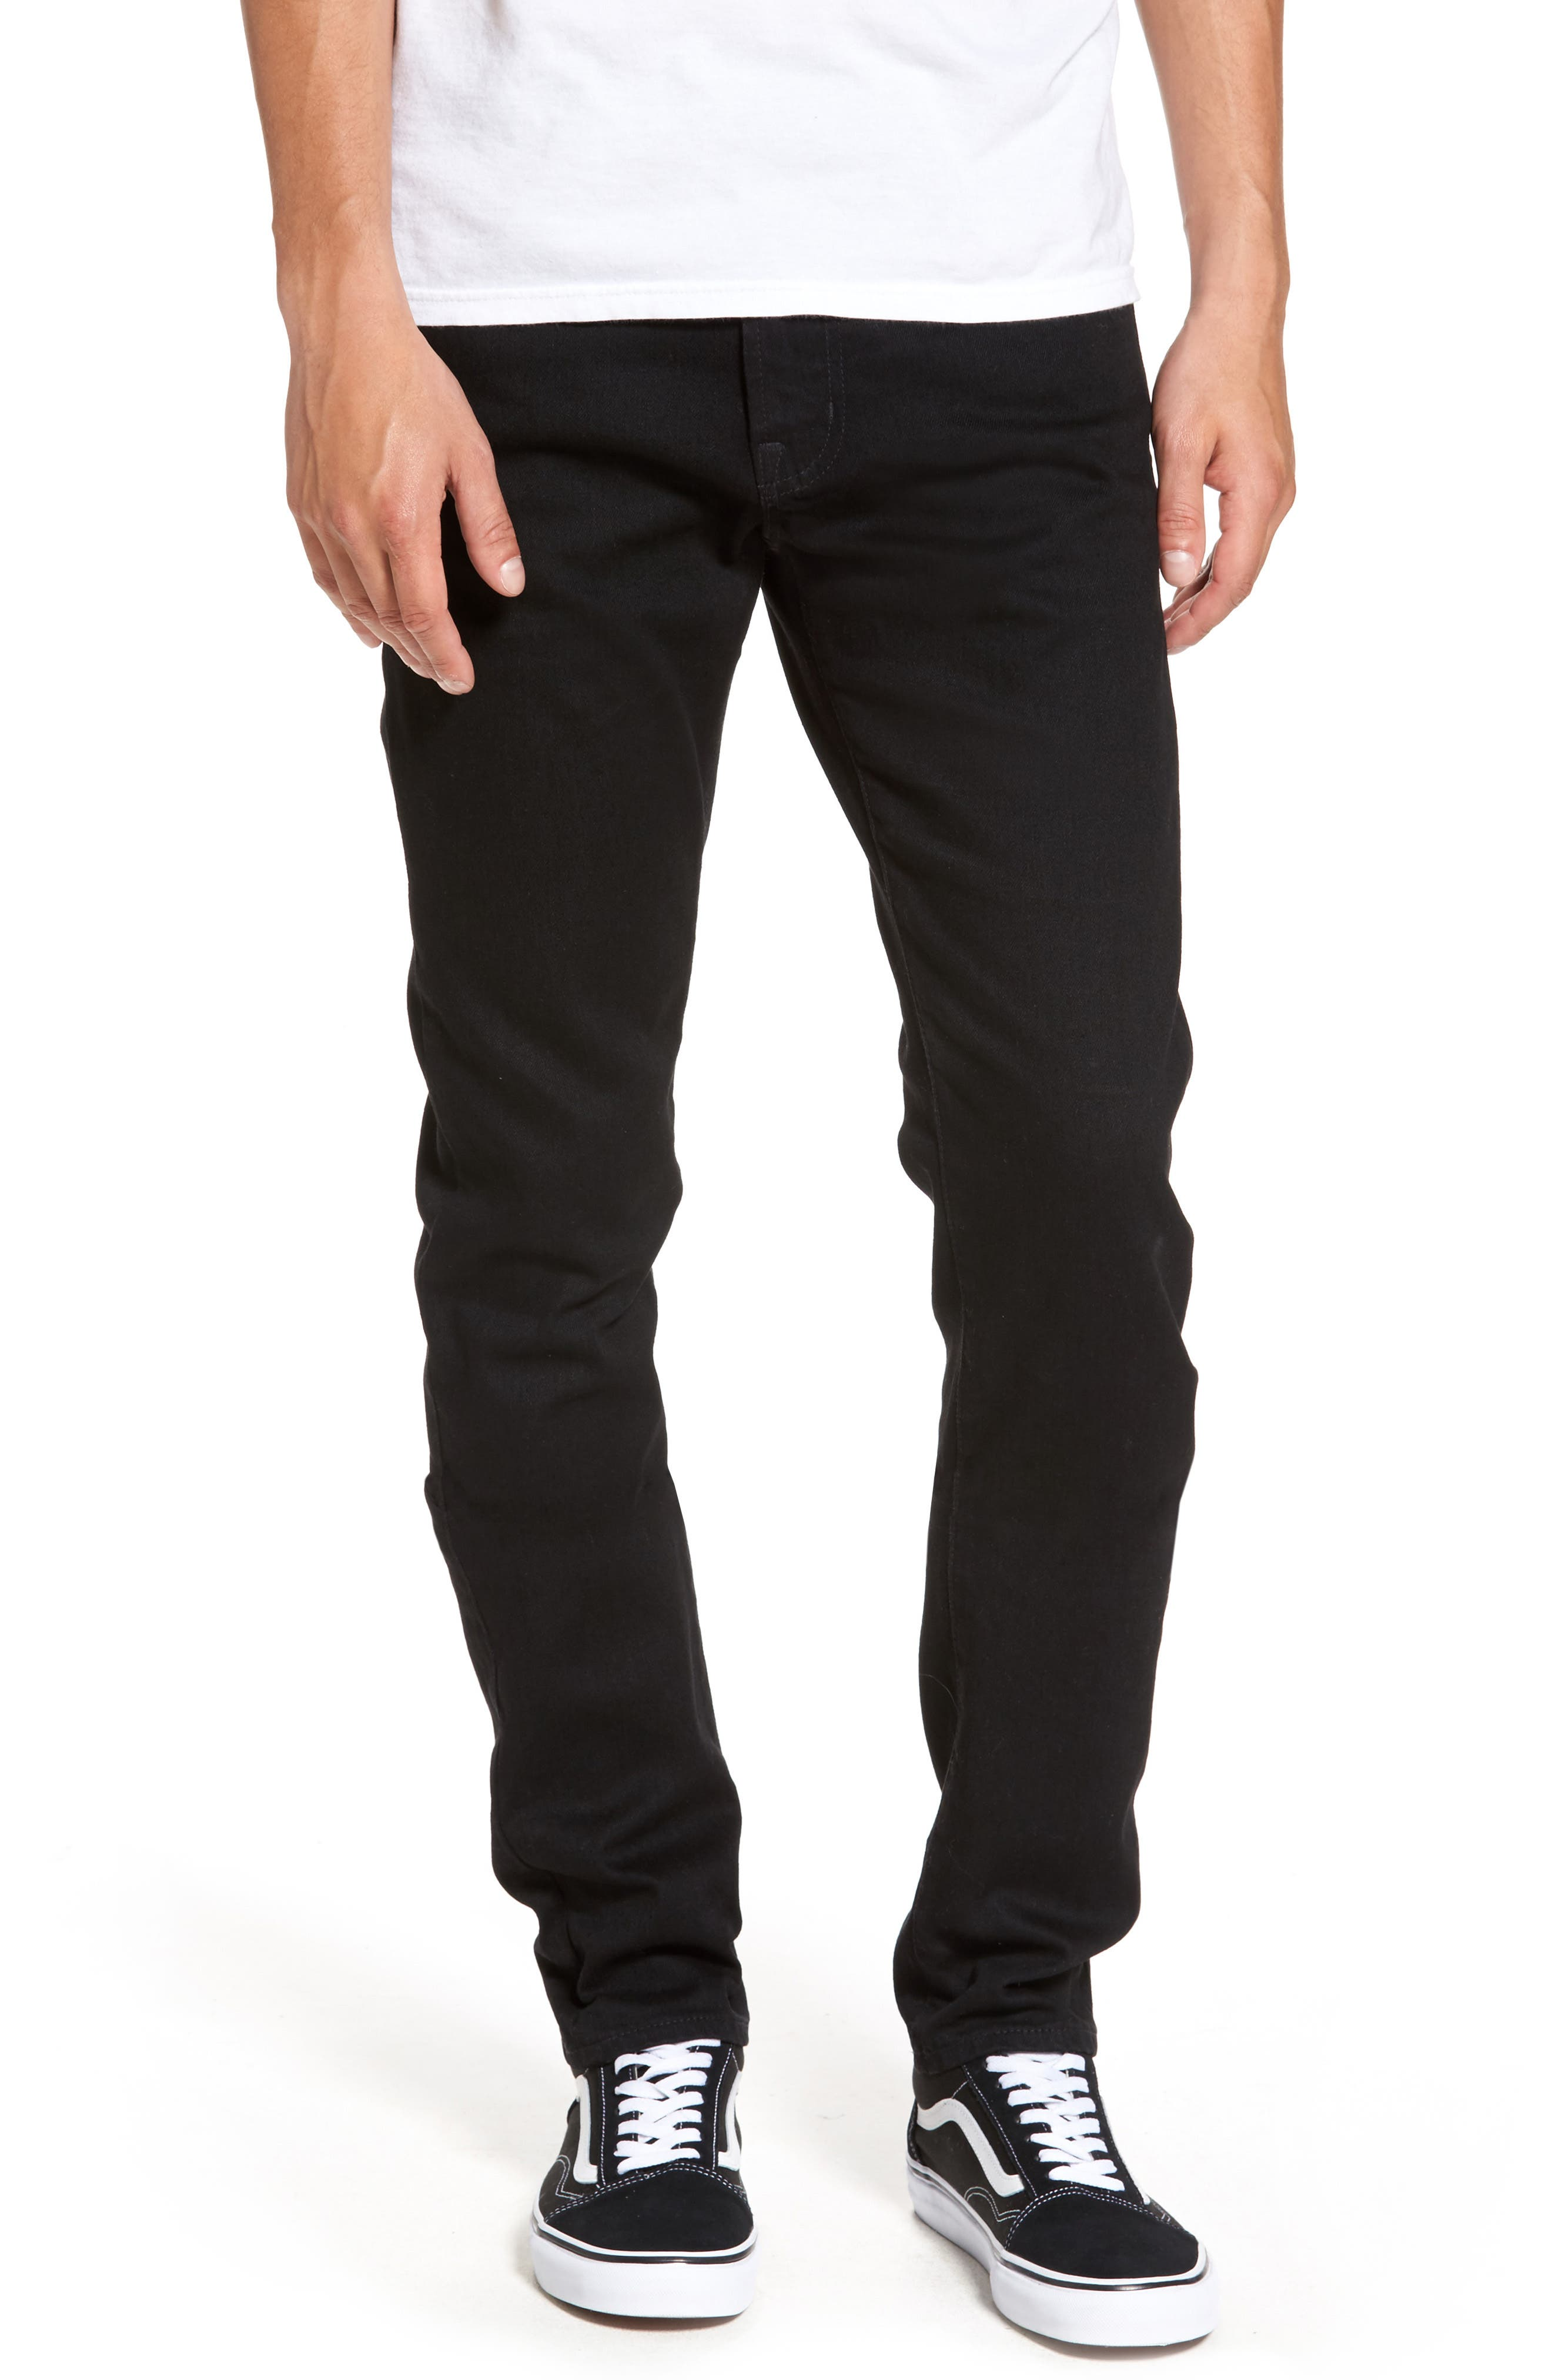 Dylan Slim Skinny Fit Jeans,                             Main thumbnail 1, color,                             400